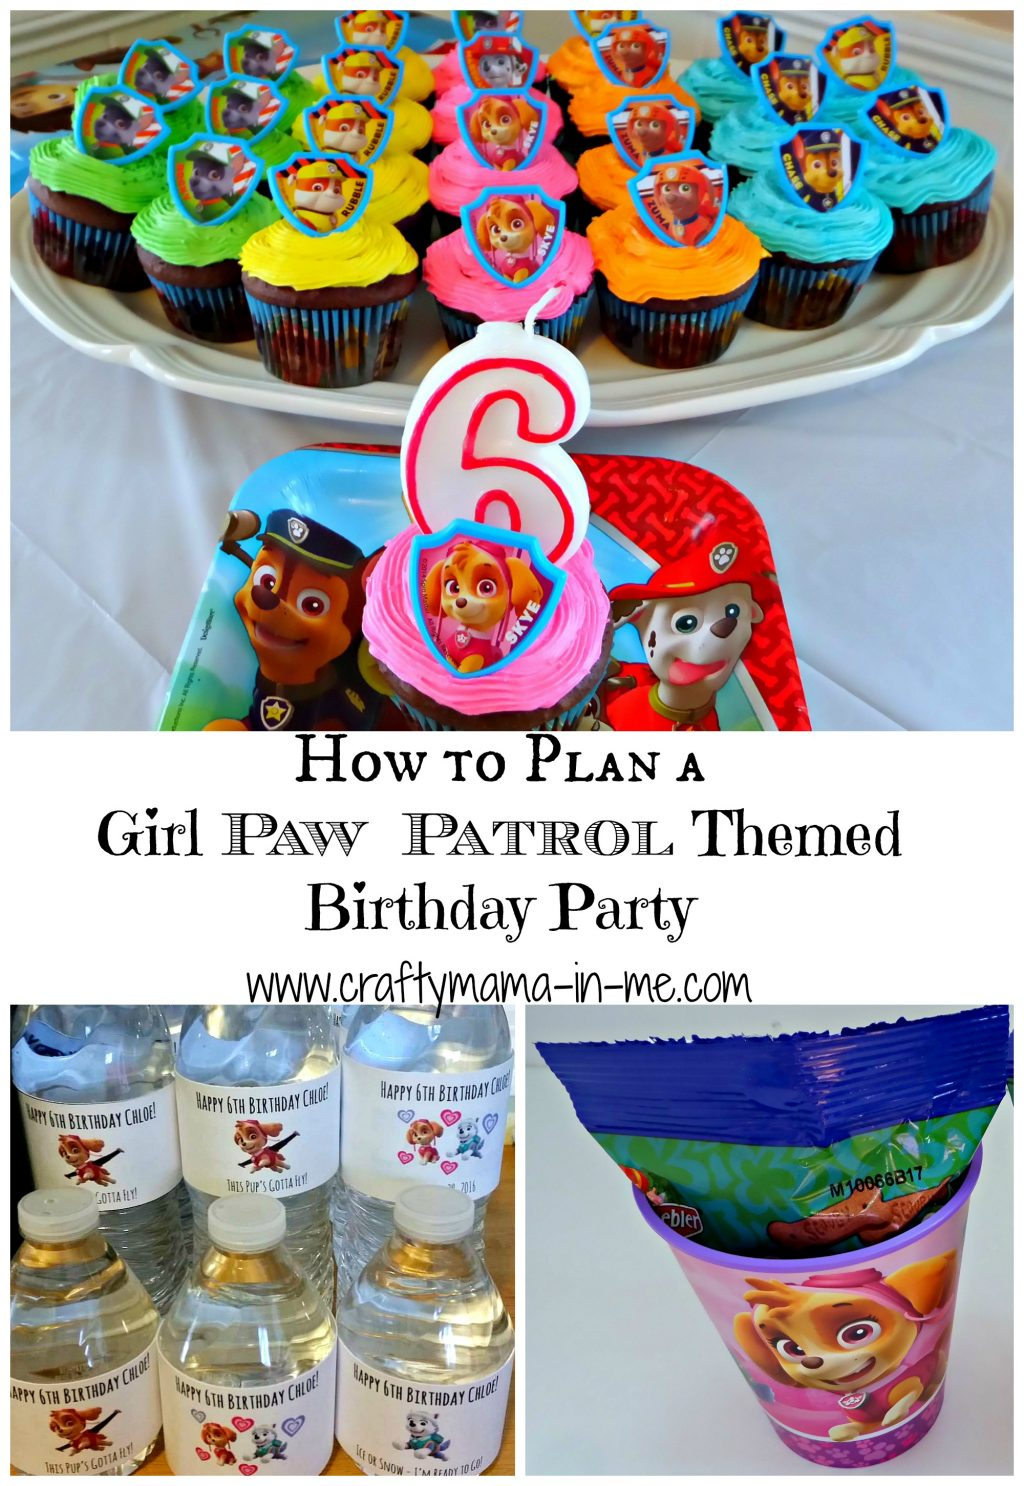 How To Plan A Girl Paw Patrol Themed Birthday Party Crafty Mama In Me